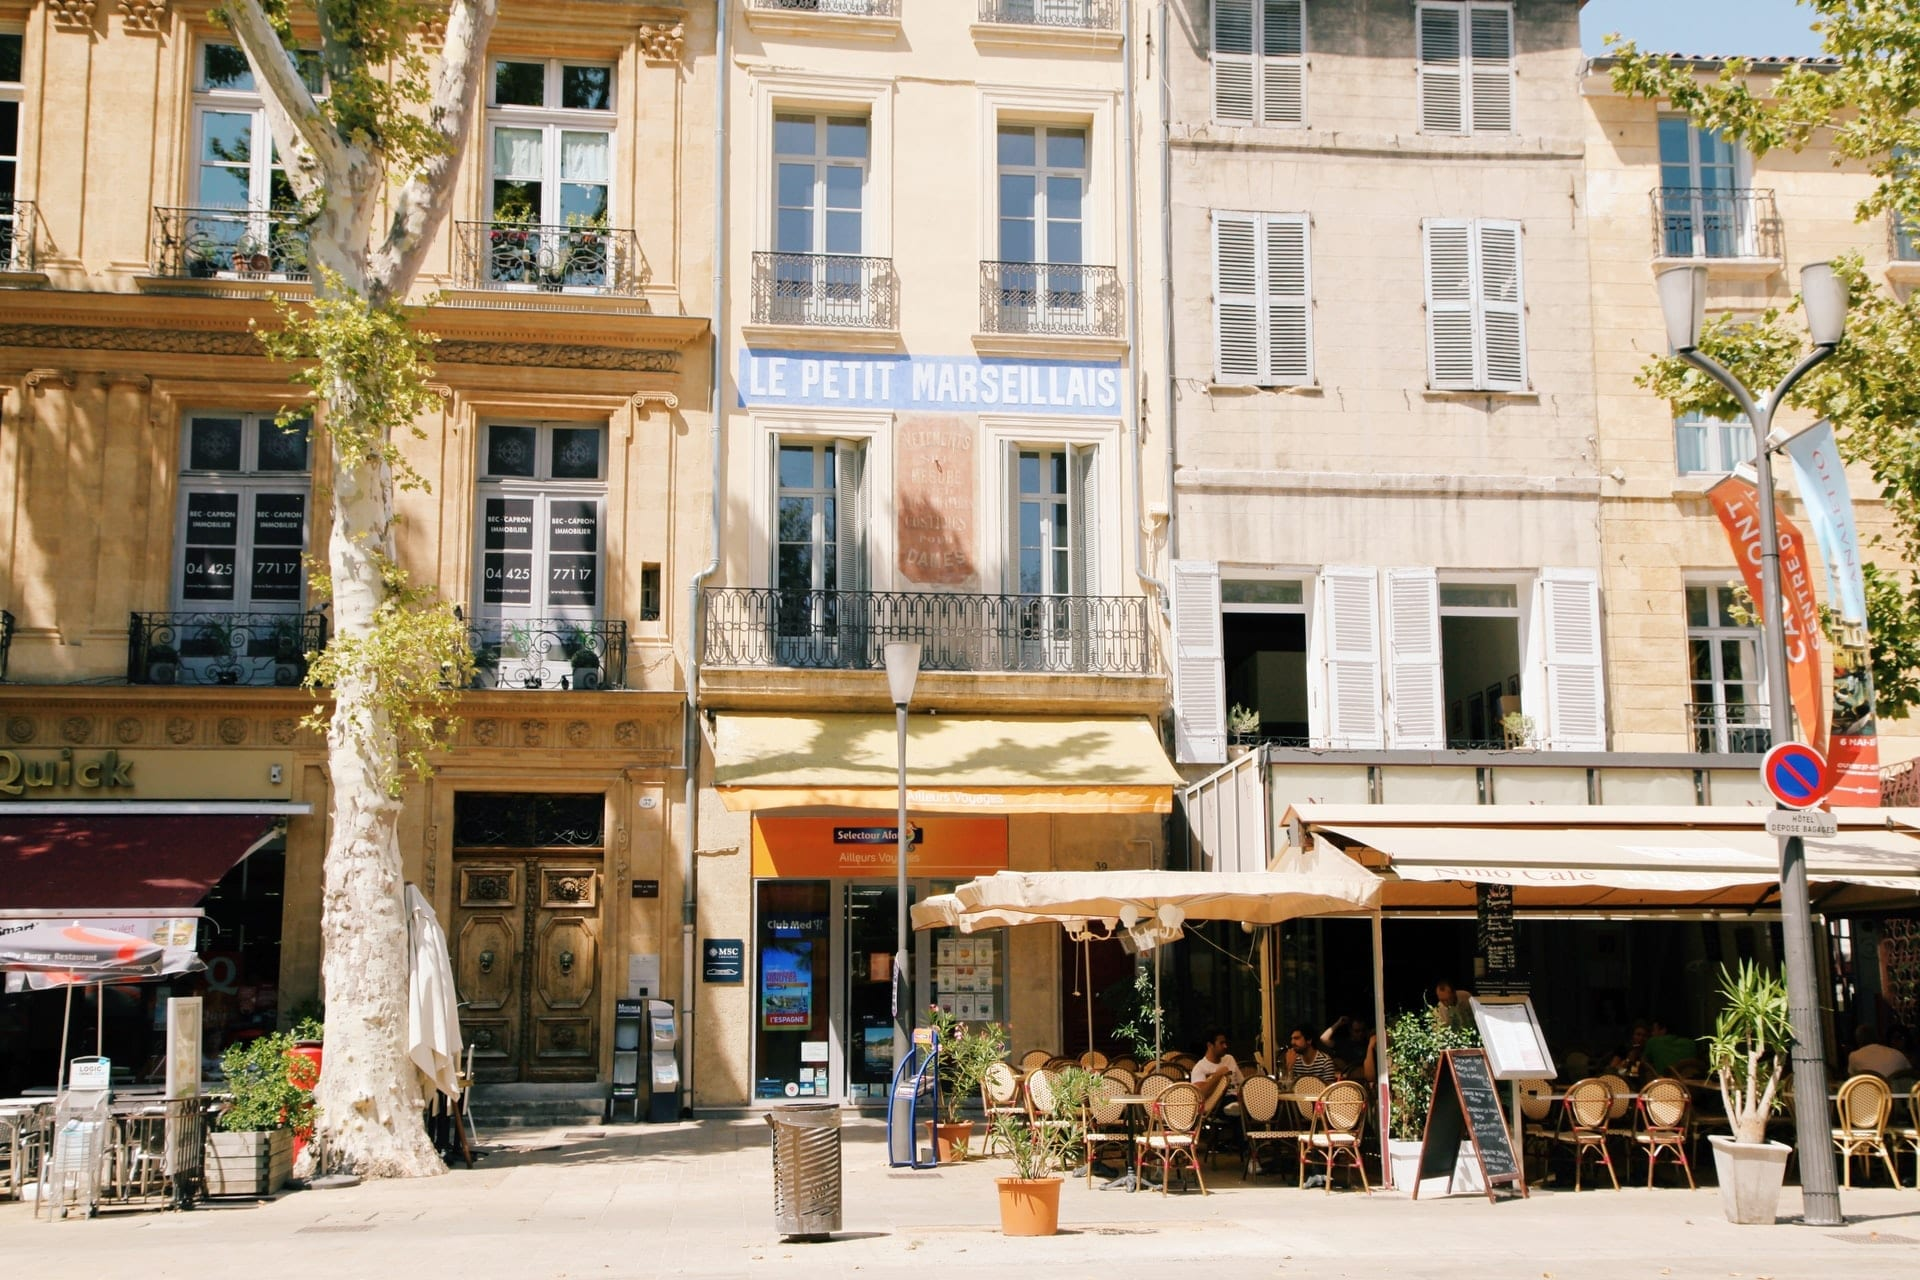 Cuisine in Provence